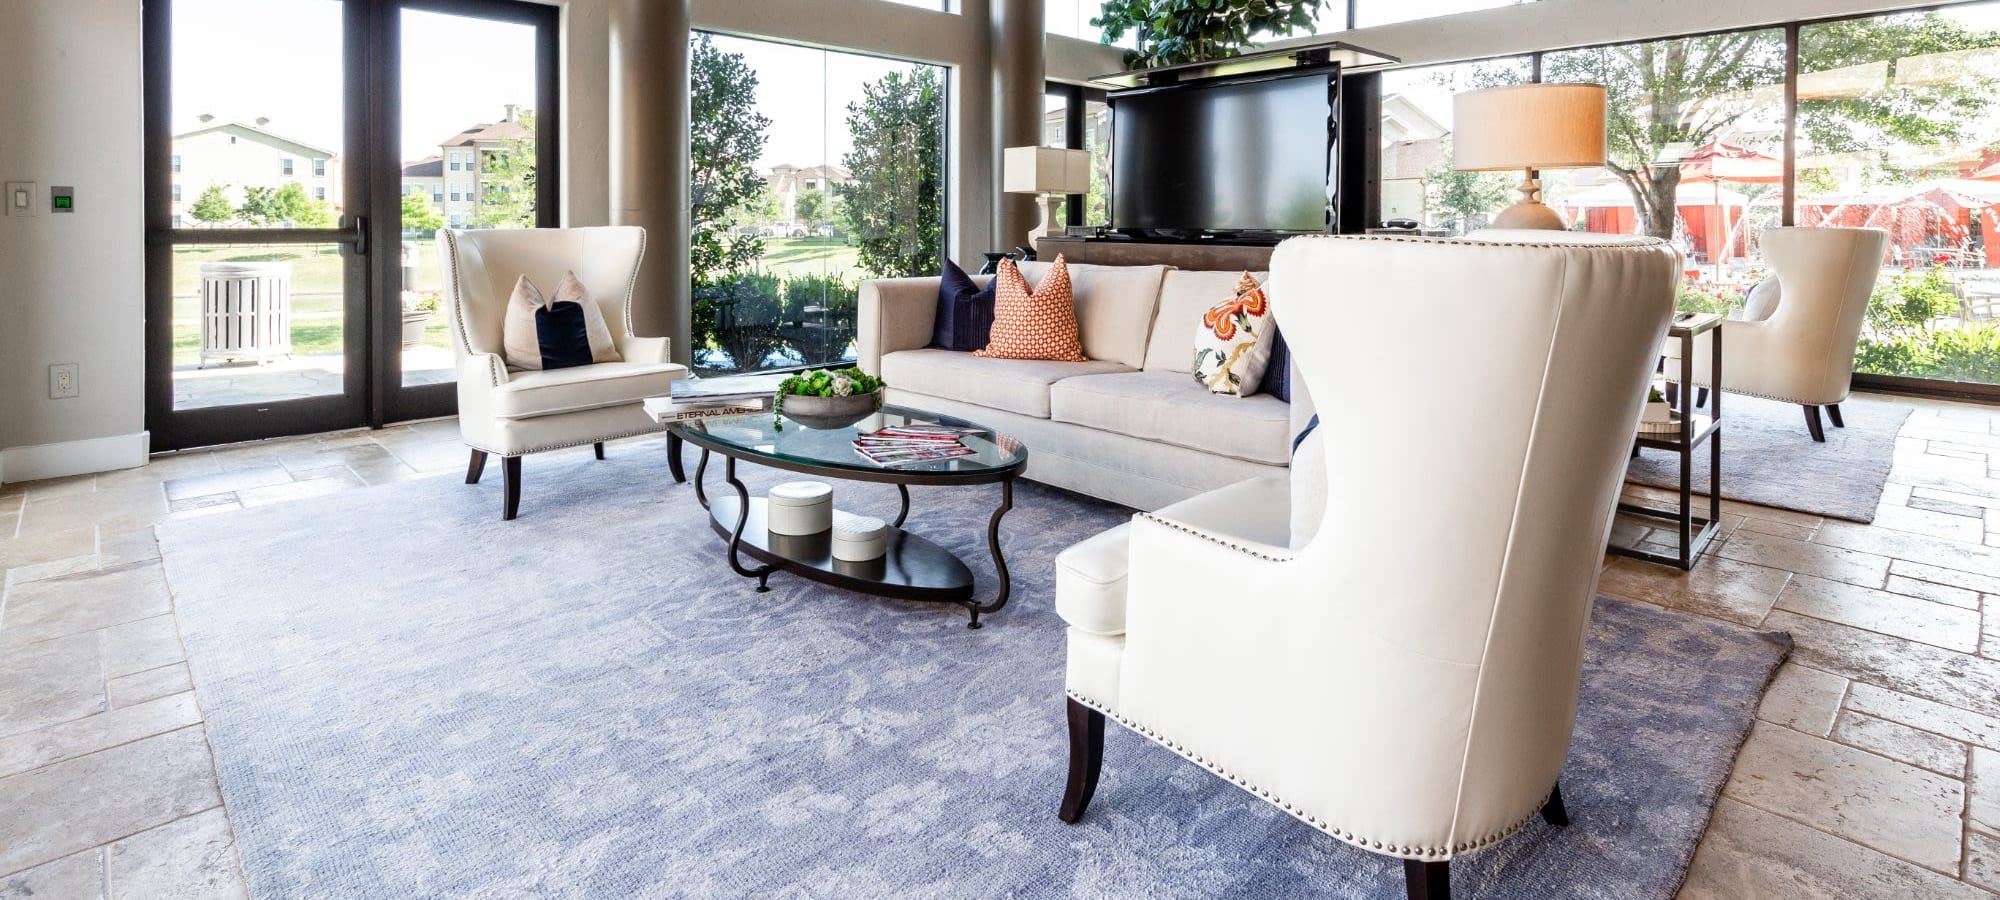 Schedule a tour of Marquis at the Reserve in Katy, Texas